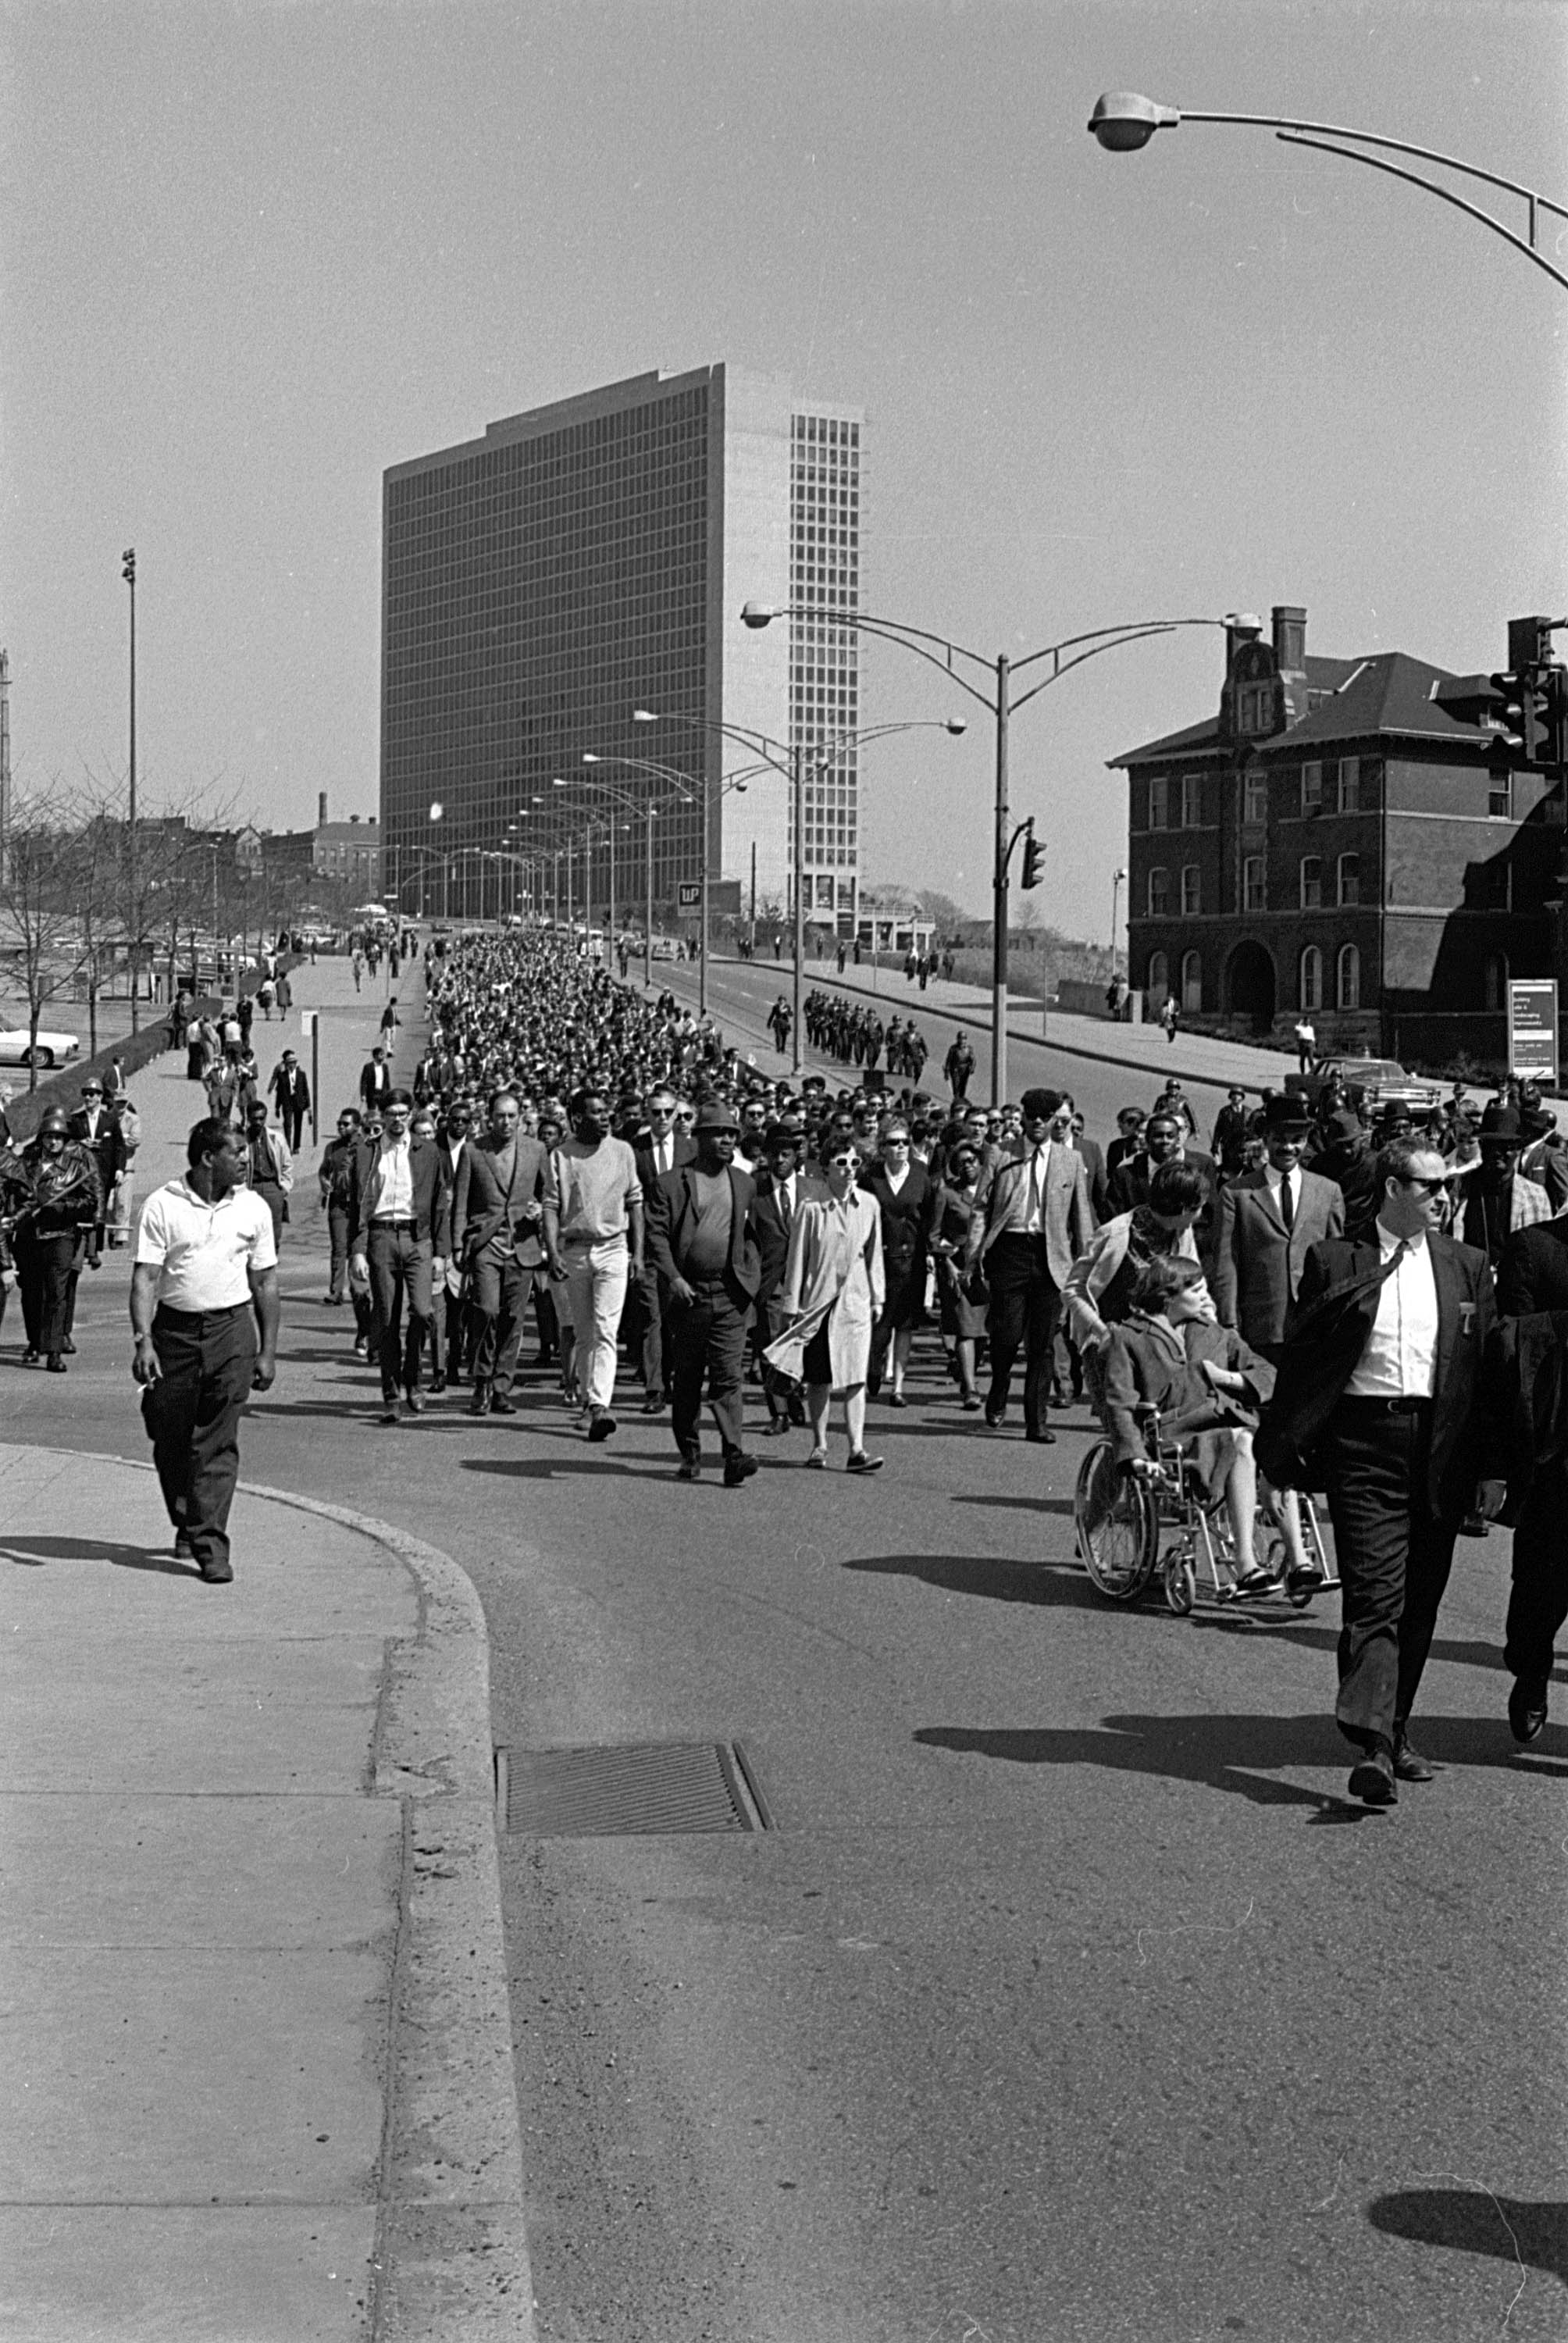 Pitt Commemorates 1968 Day of National Mourning for Martin ...